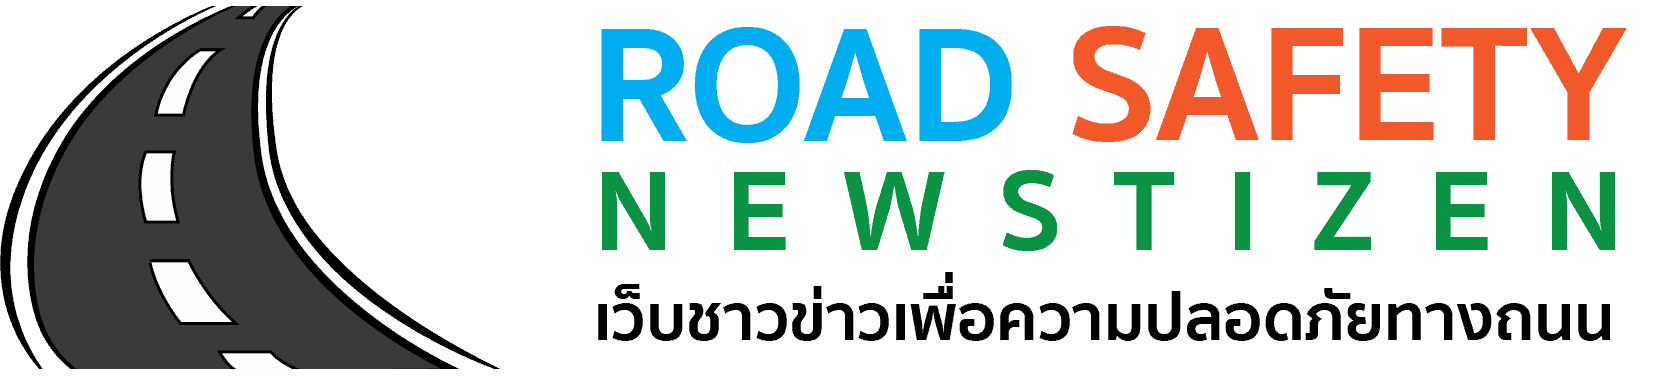 logo-ROAD SAFETY NEWS